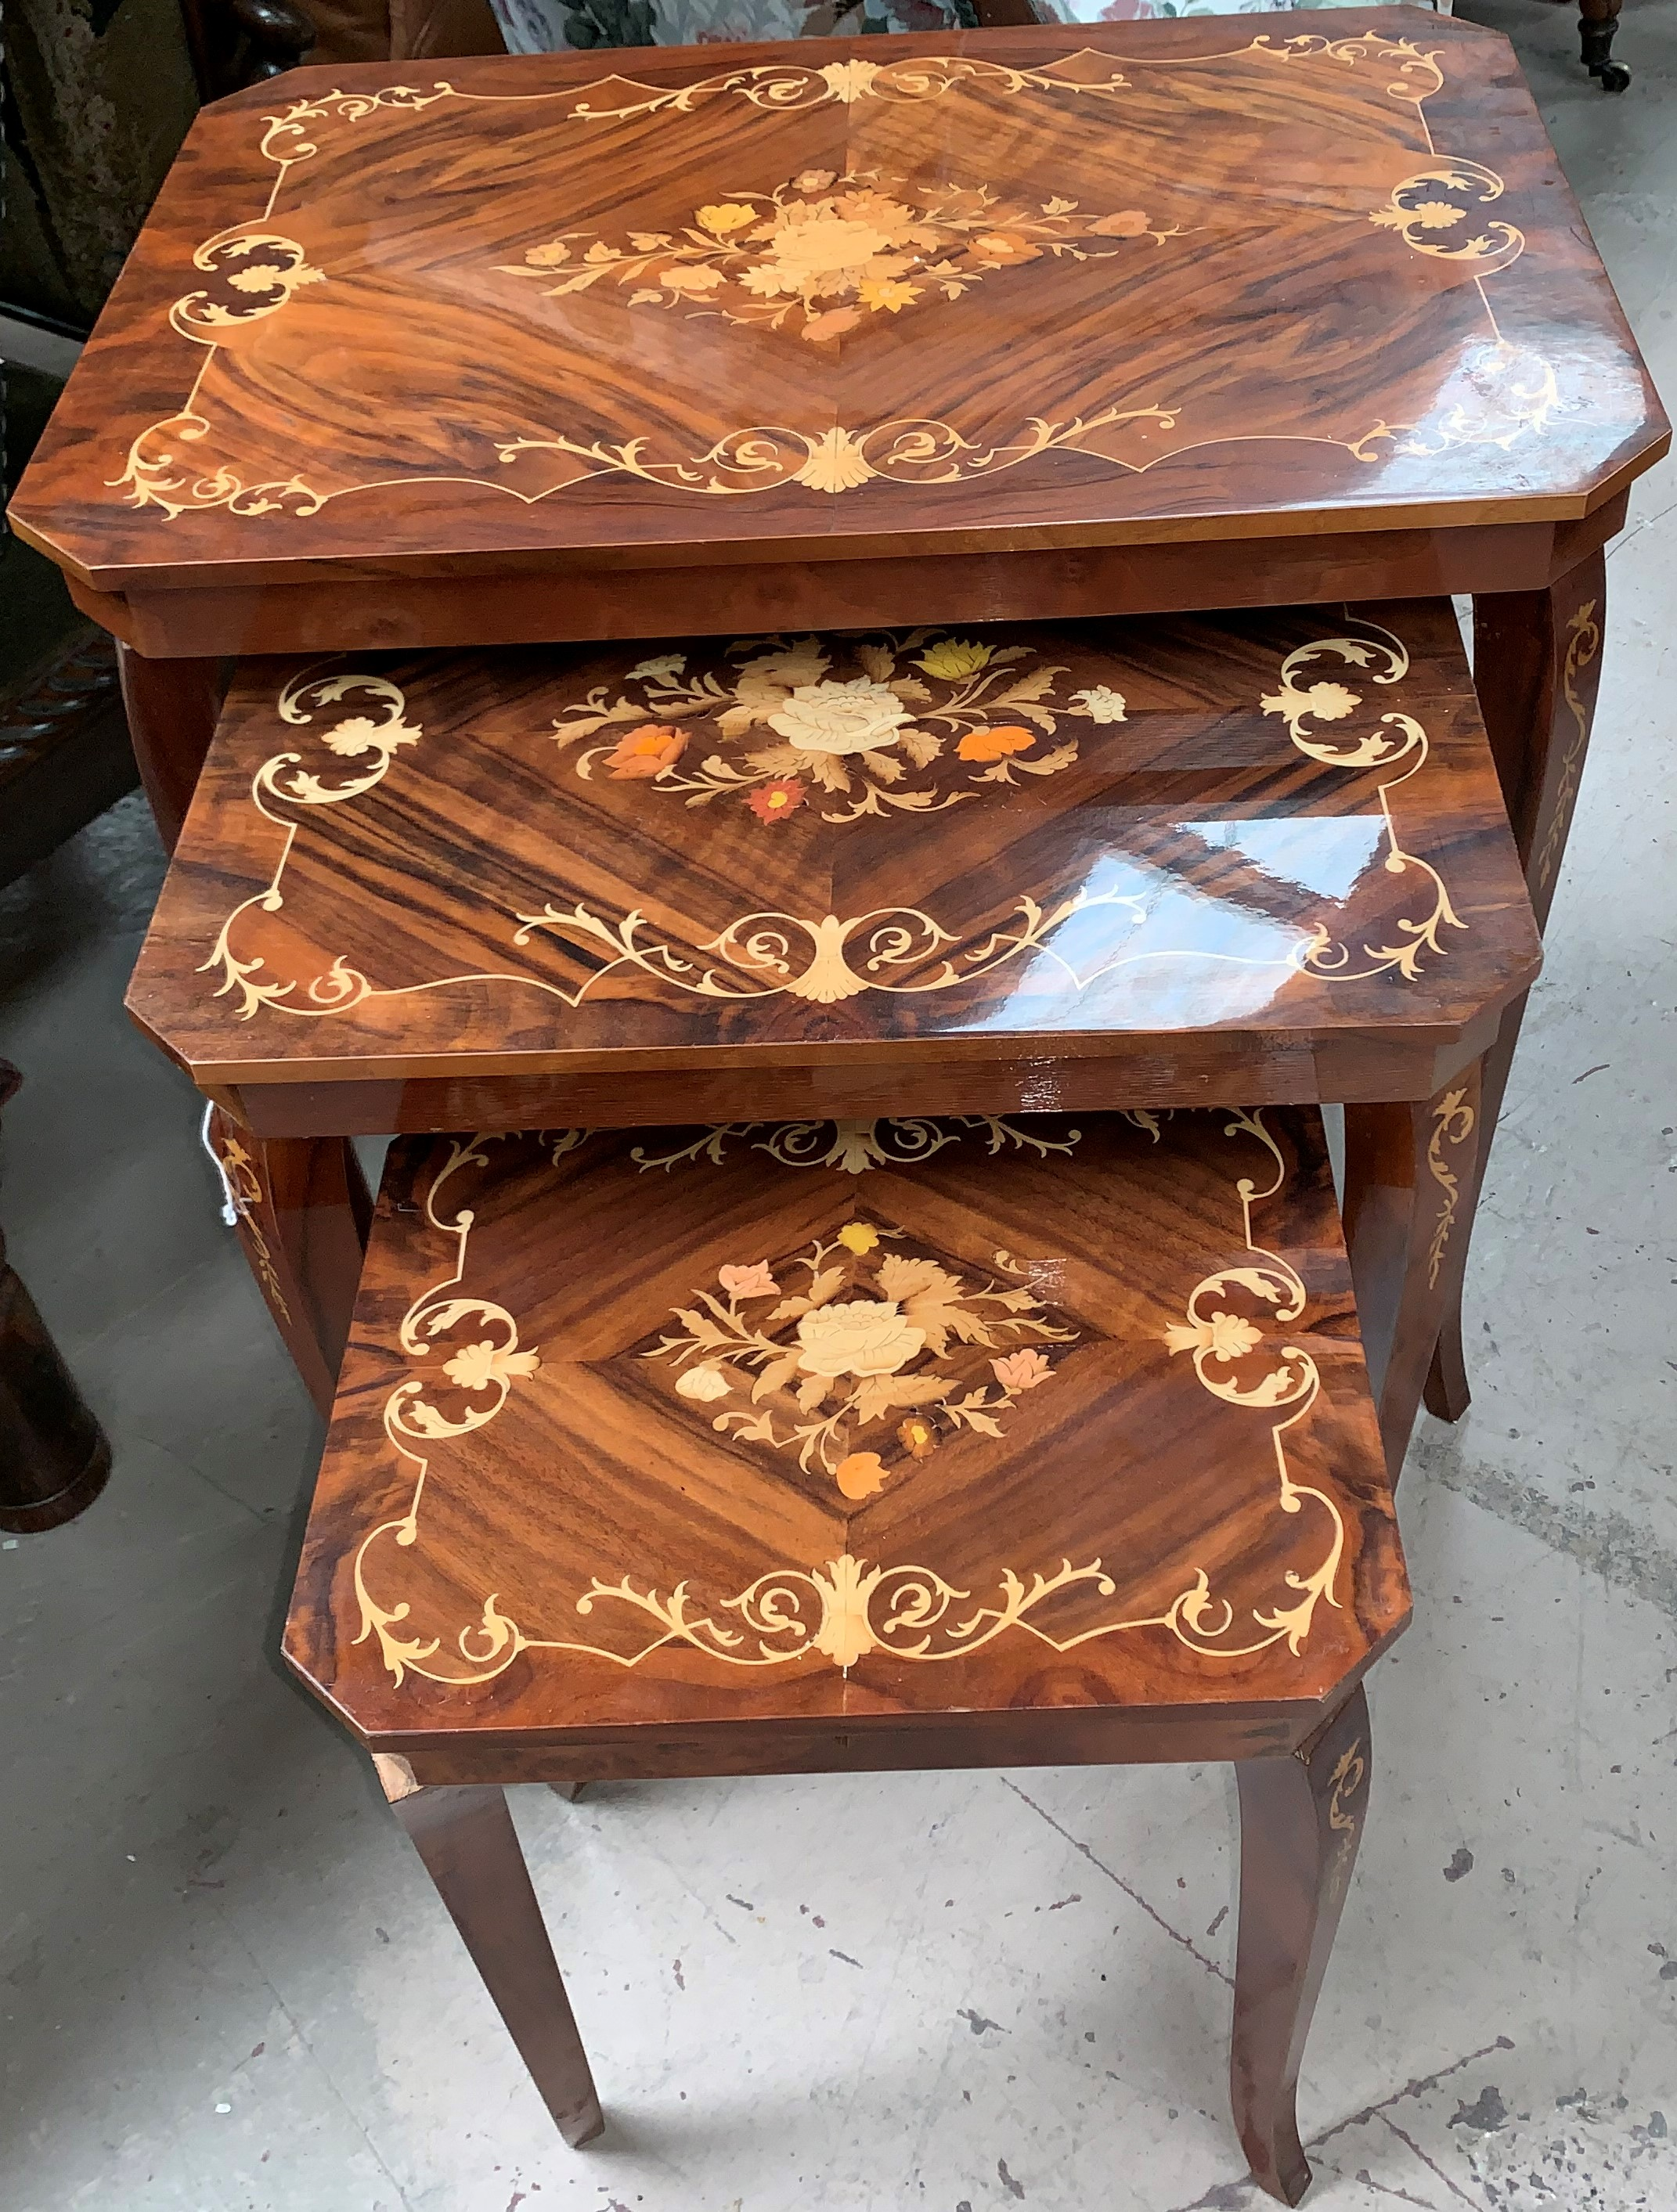 Lot 313A - A nest of 3 modern Italian 'Sorrento' style walnut and marquetry effect occasional tables